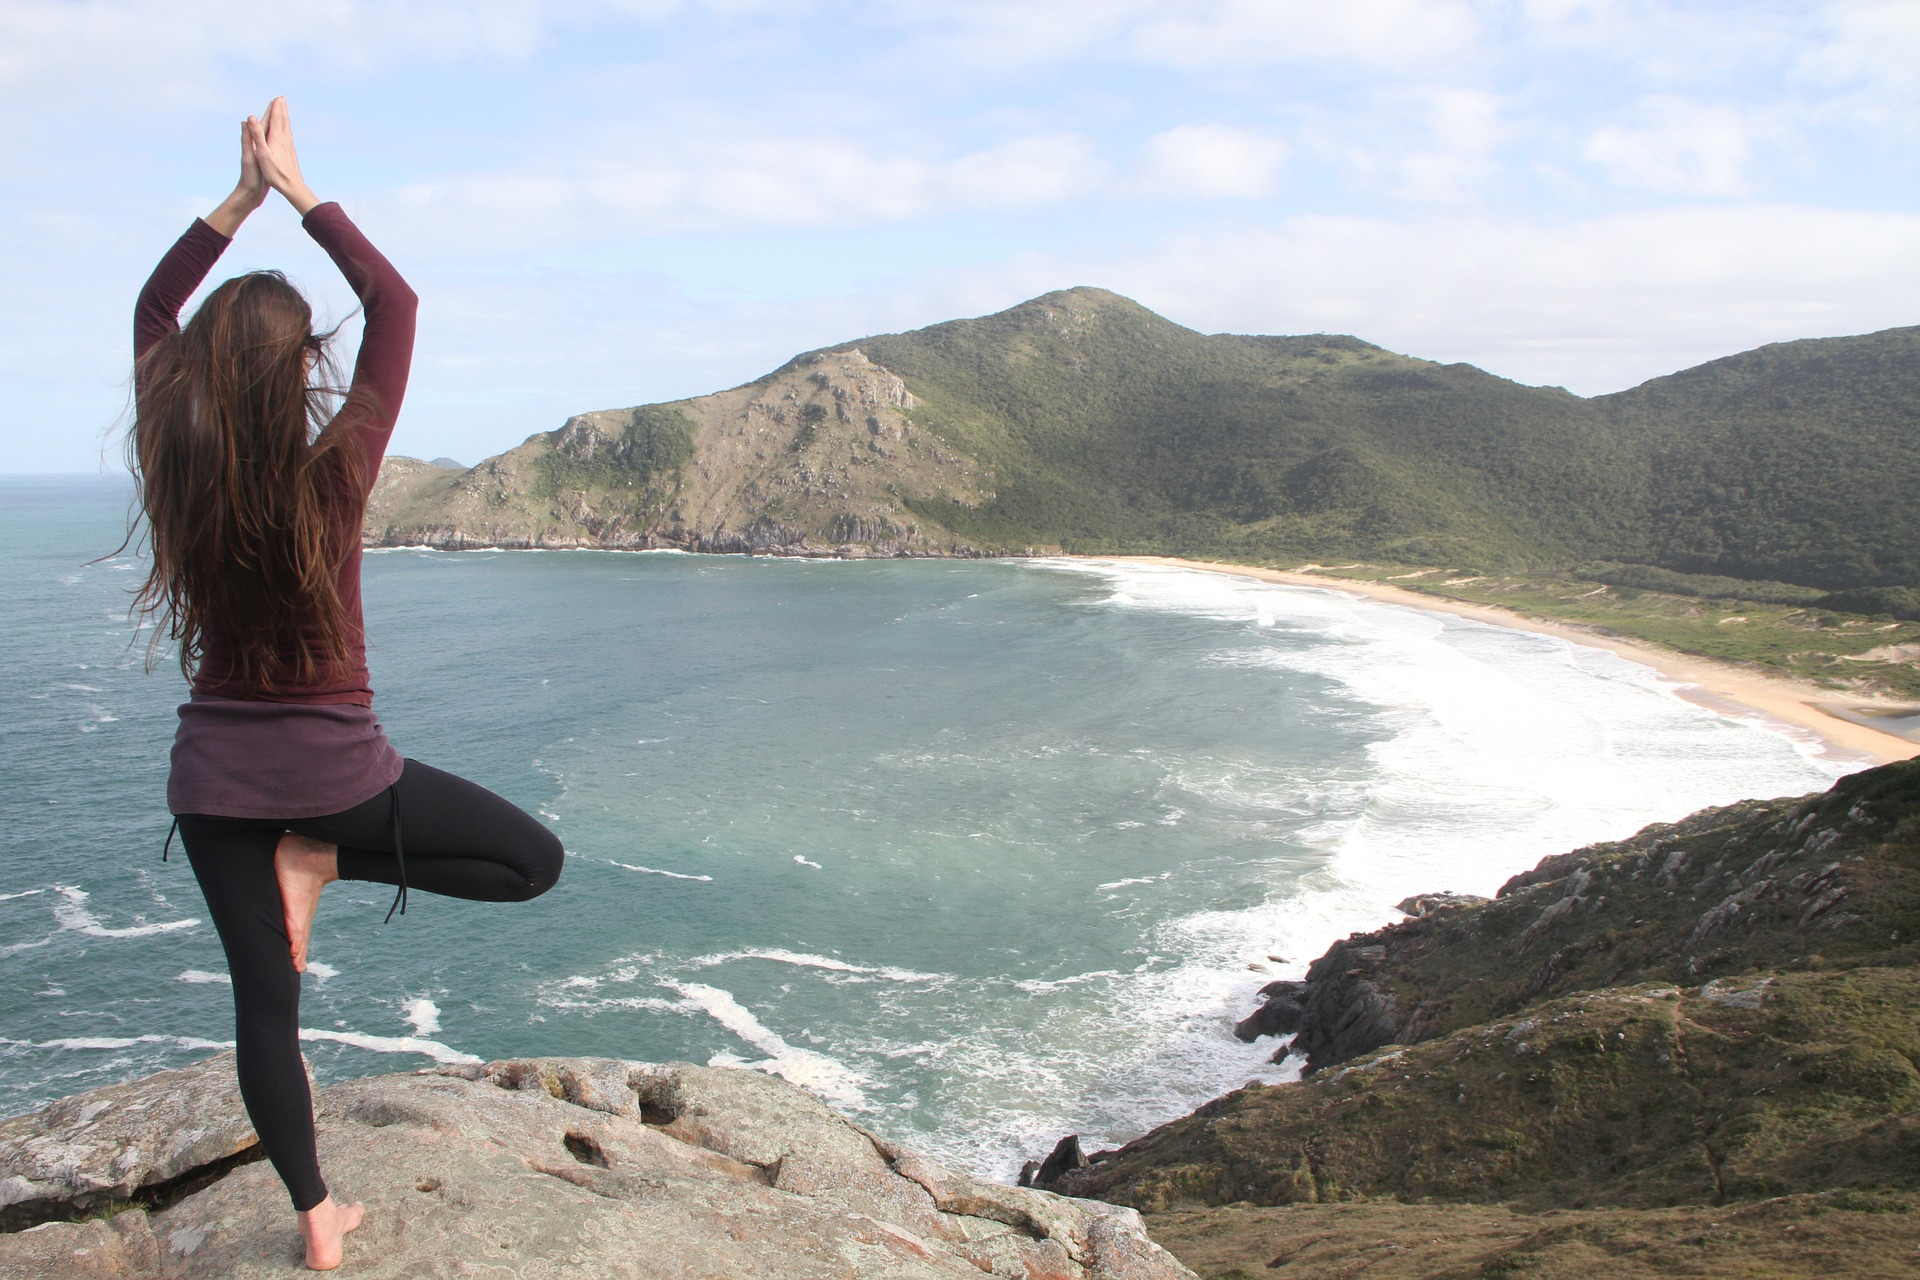 girl doing yoga on mountain cliff overlooking ocean